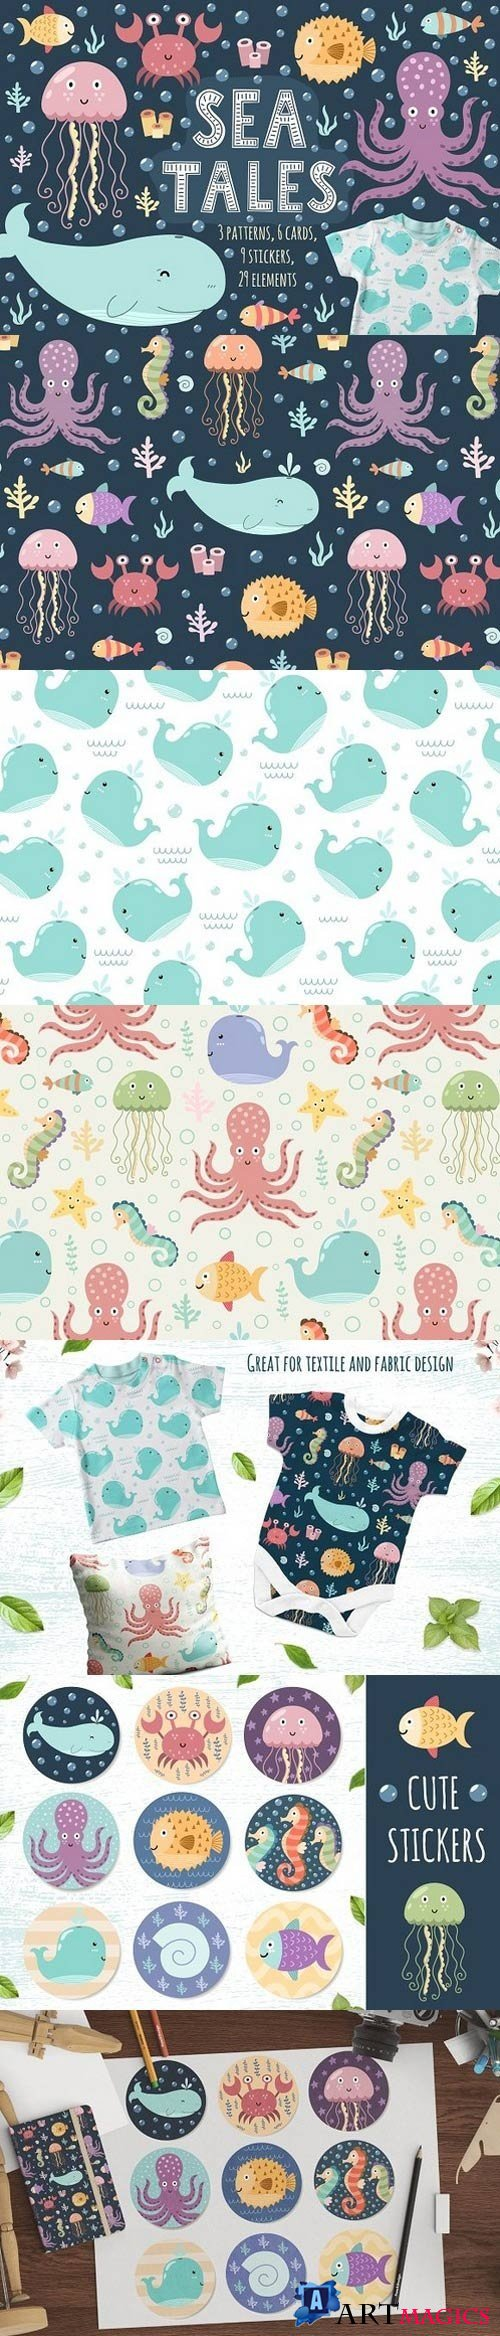 Sea Tales: patterns, stickers, cards 1702638